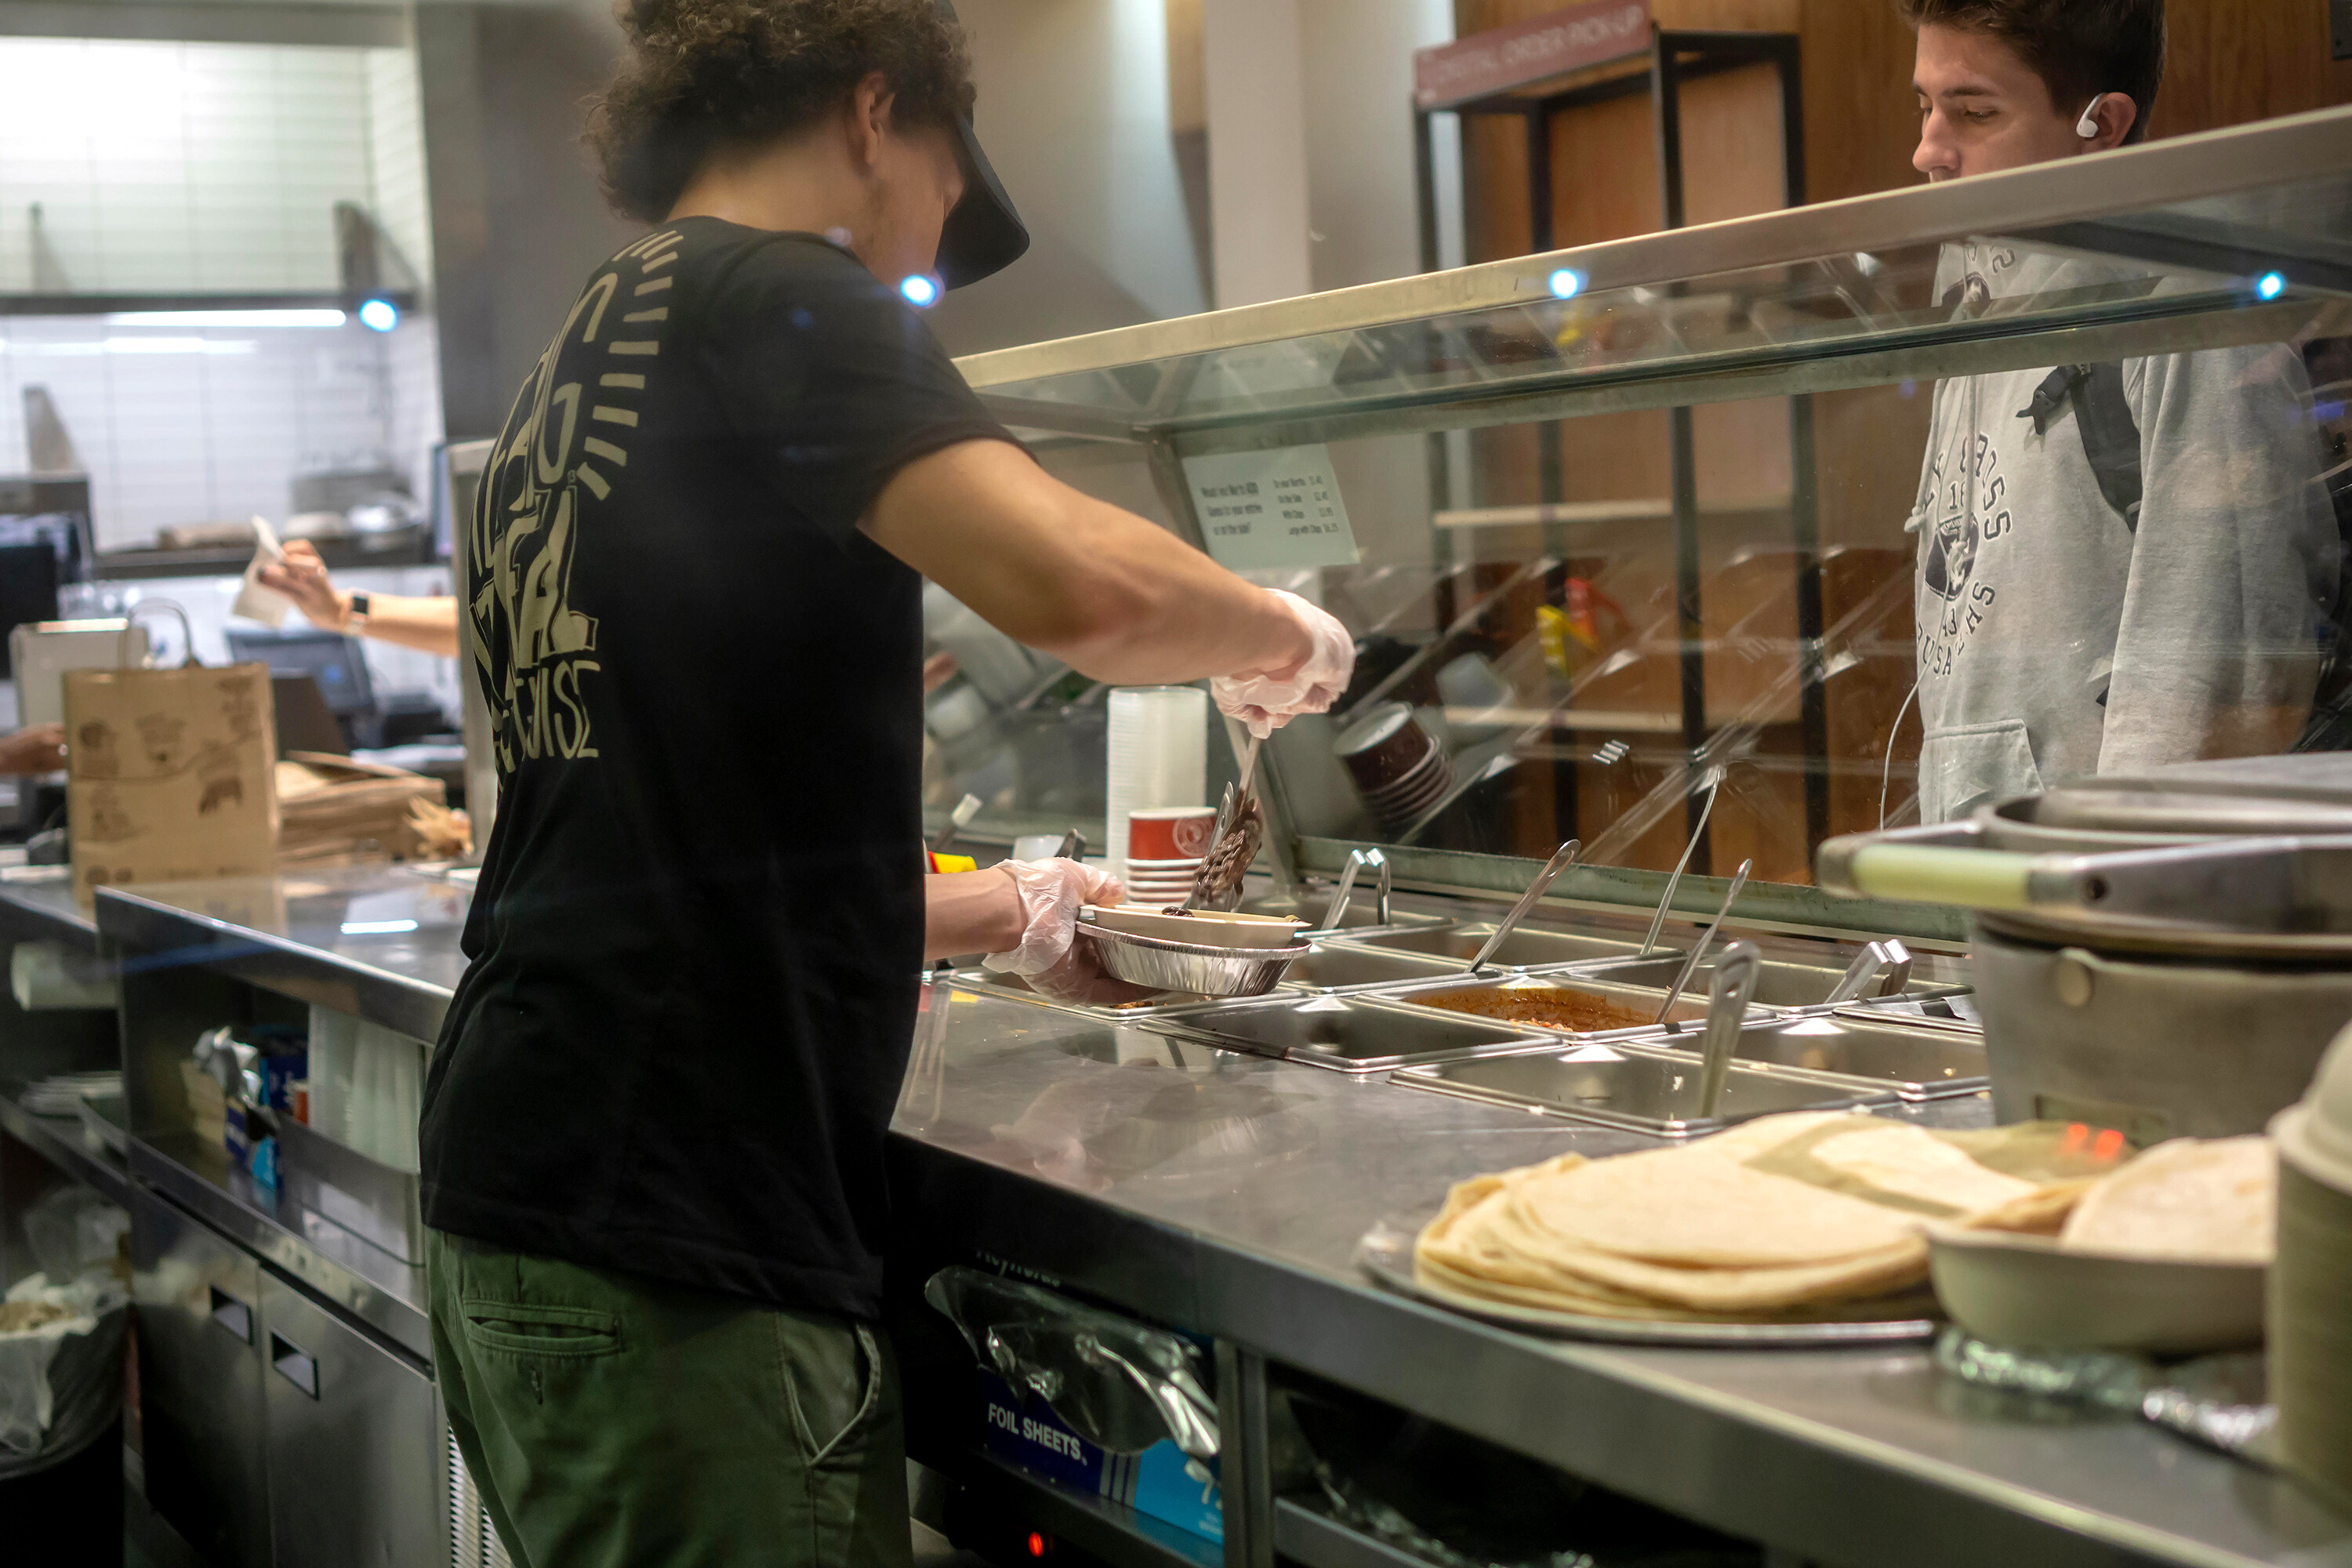 Low-wage workers are getting 'eye-popping' pay raises, Goldman Sachs says